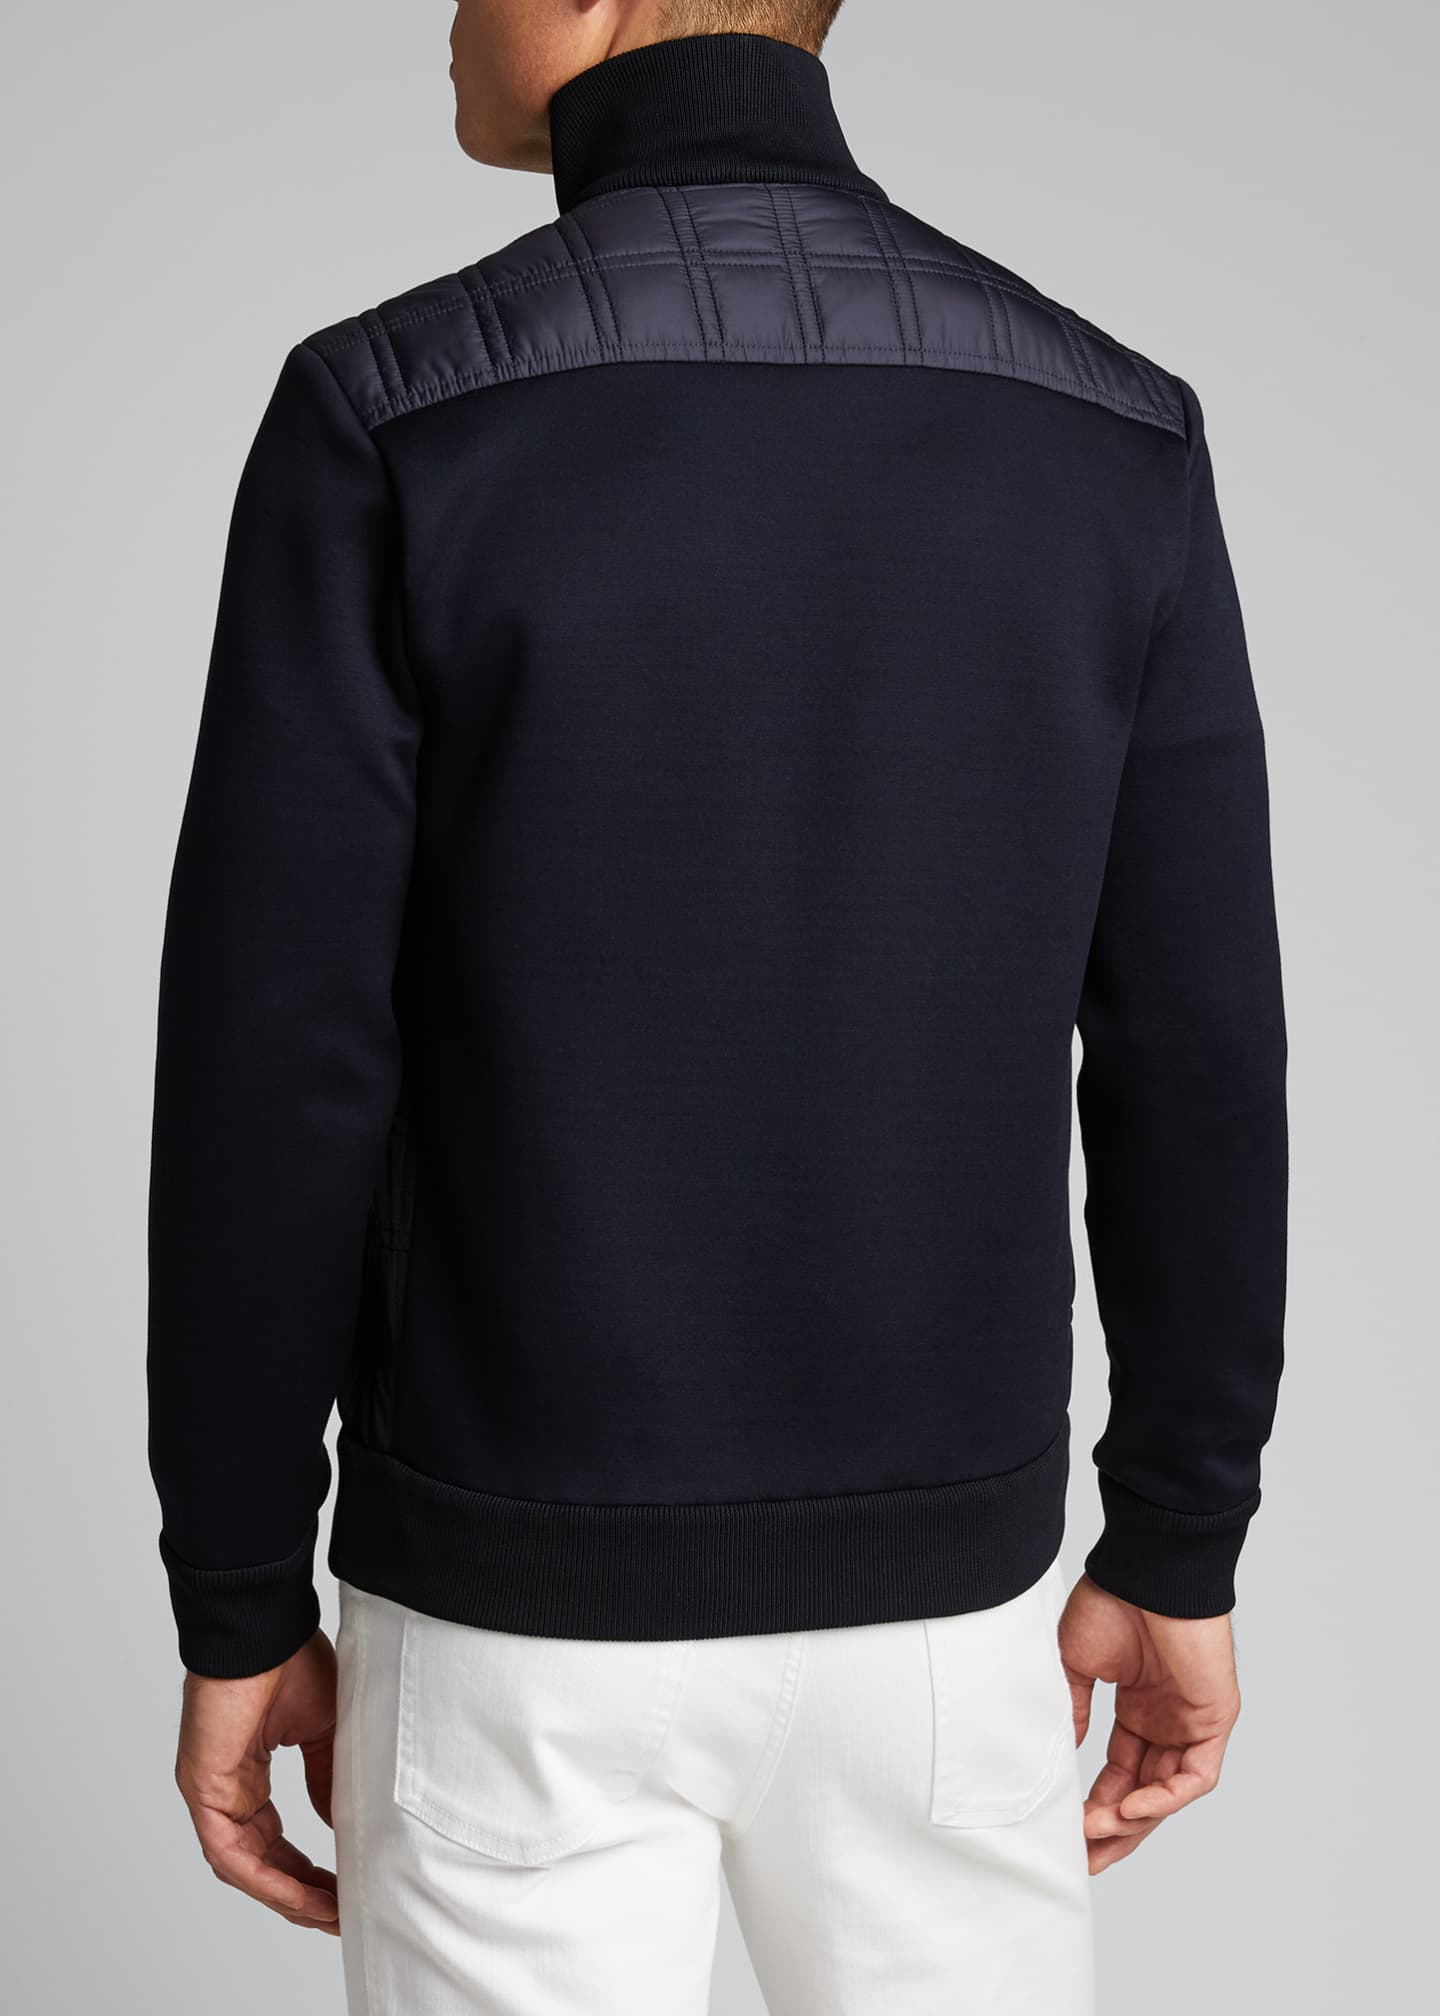 Image 2 of 5: Men's Quilt Knit Blouson Jacket